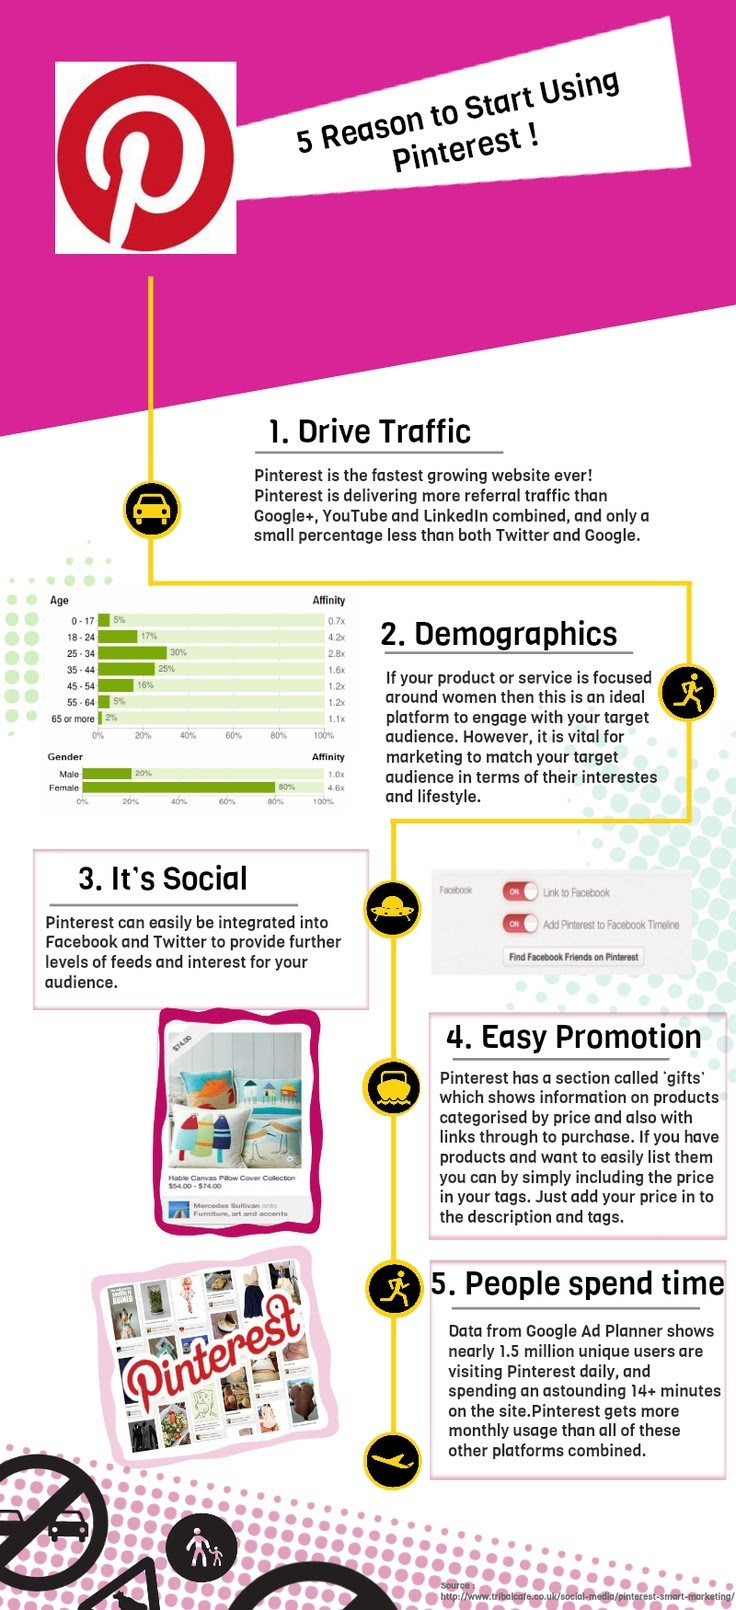 5 Reasons To Start Using Pinterest #Infographic